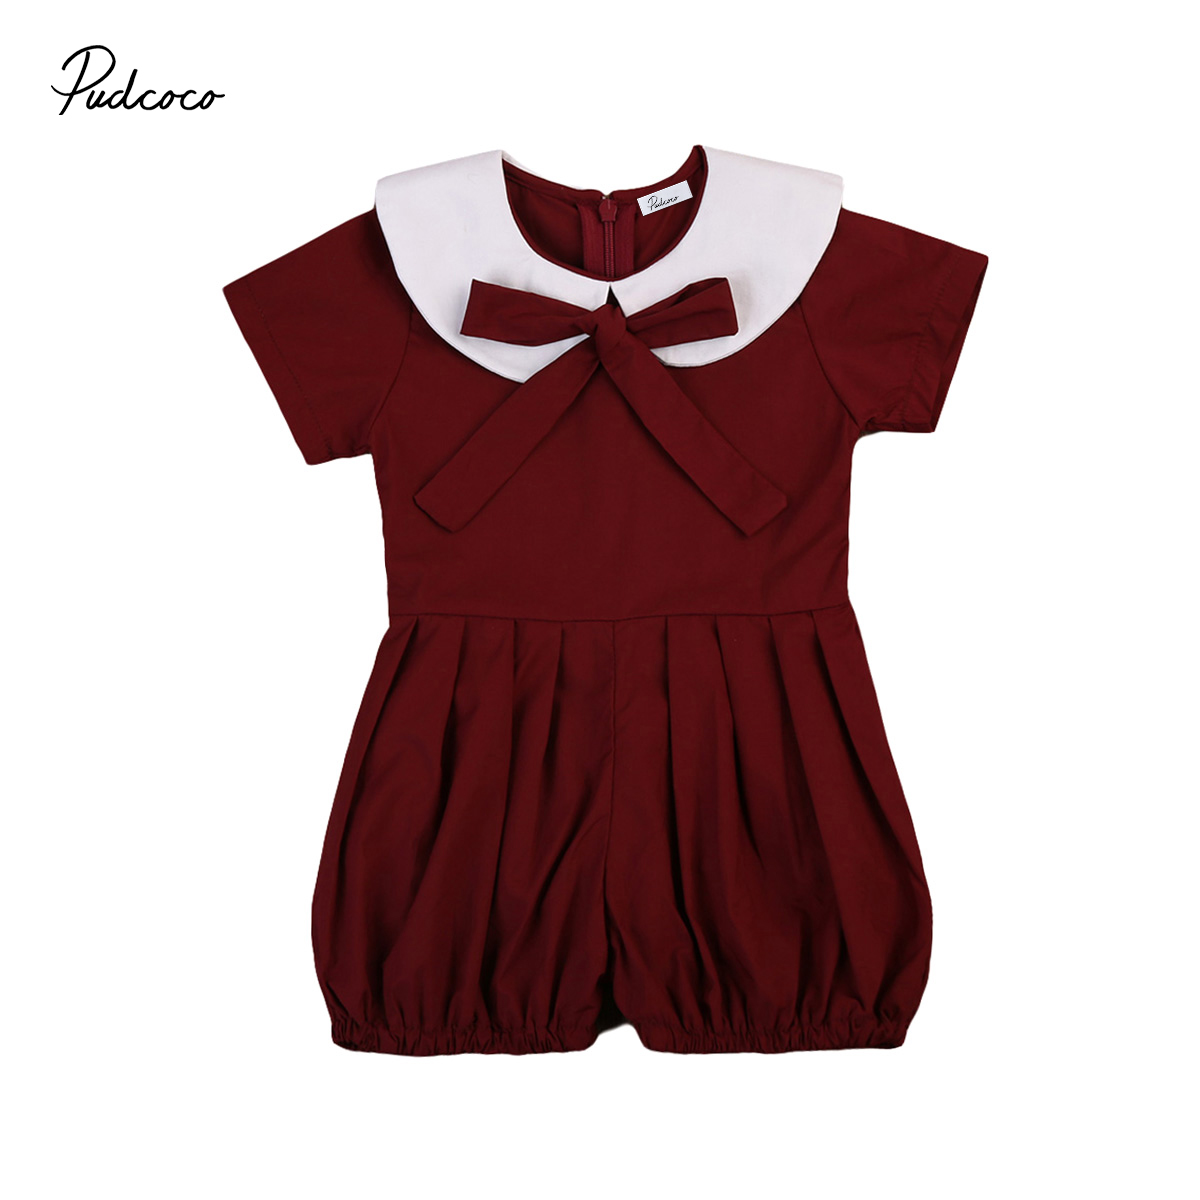 2017 New Brand Summer Newborn Toddler Infant Kids Baby Girl Outfit Clothes Ruffled Romper Jumpsuit Short Sleeve Sunsuit 6M-4T cute newborn baby kids girls lace floral jumpsuit romper outfit clothes infant toddler girl rompers summer pink lovely clothing